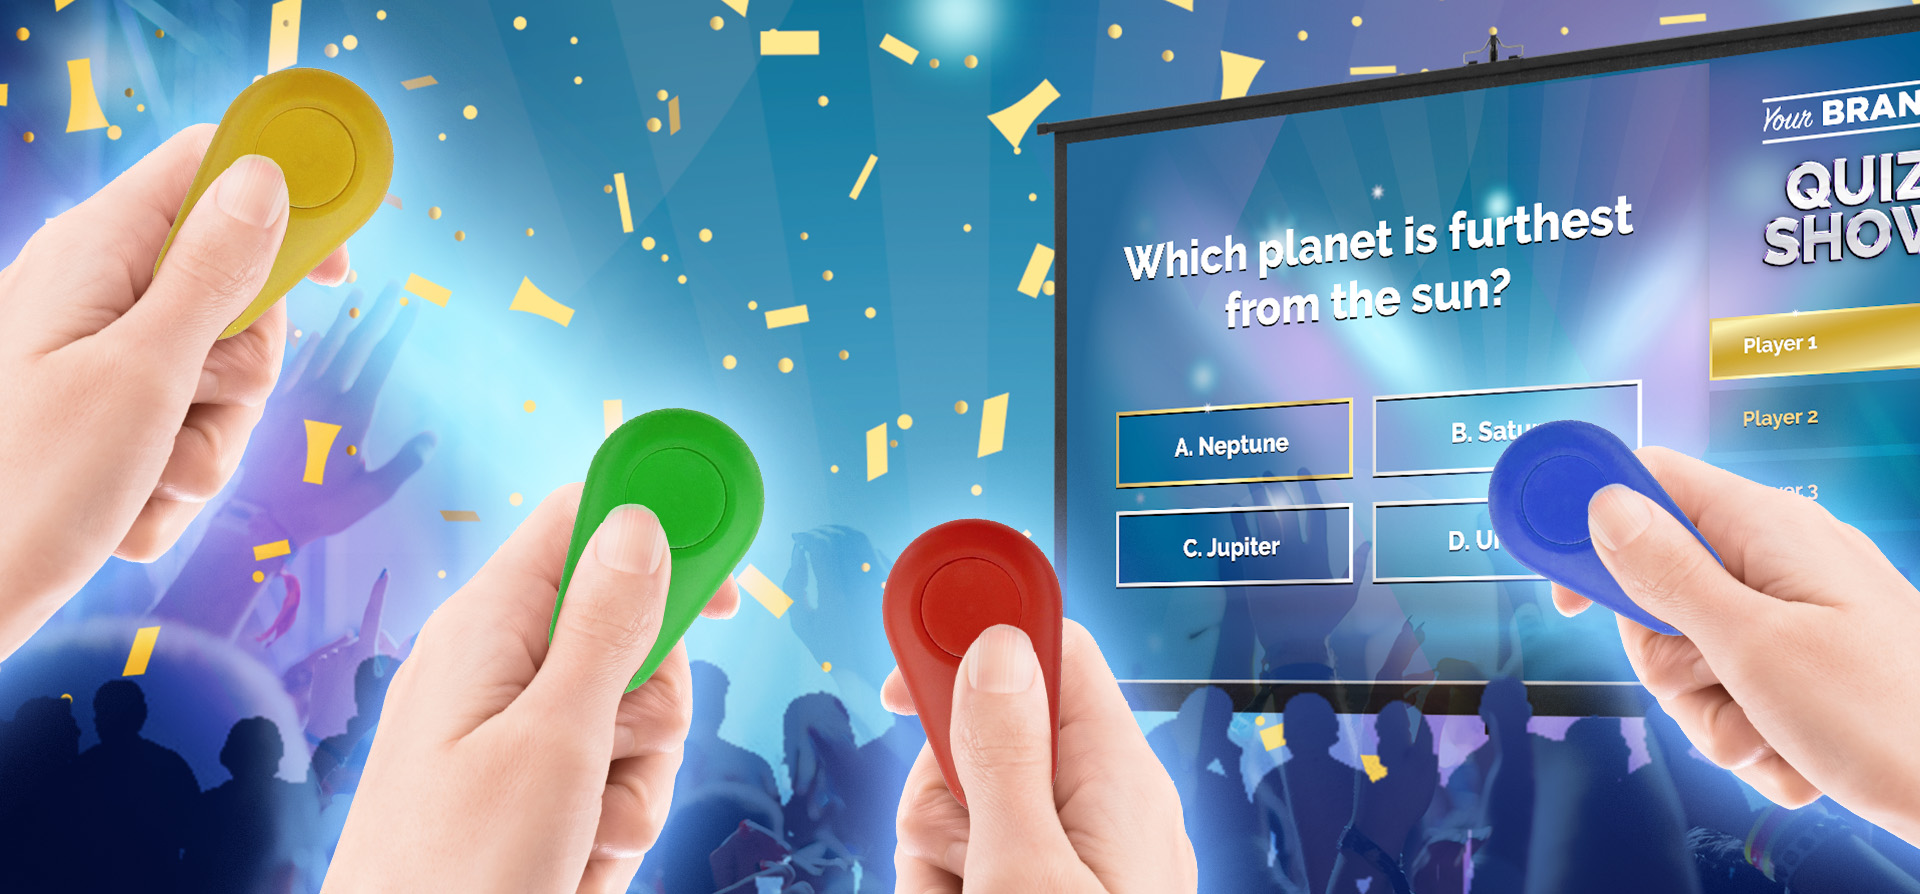 customisable_activation_game_developer_sydney_quiz_show_bluetooth_buzzer_ios_screen_multiplayer_11